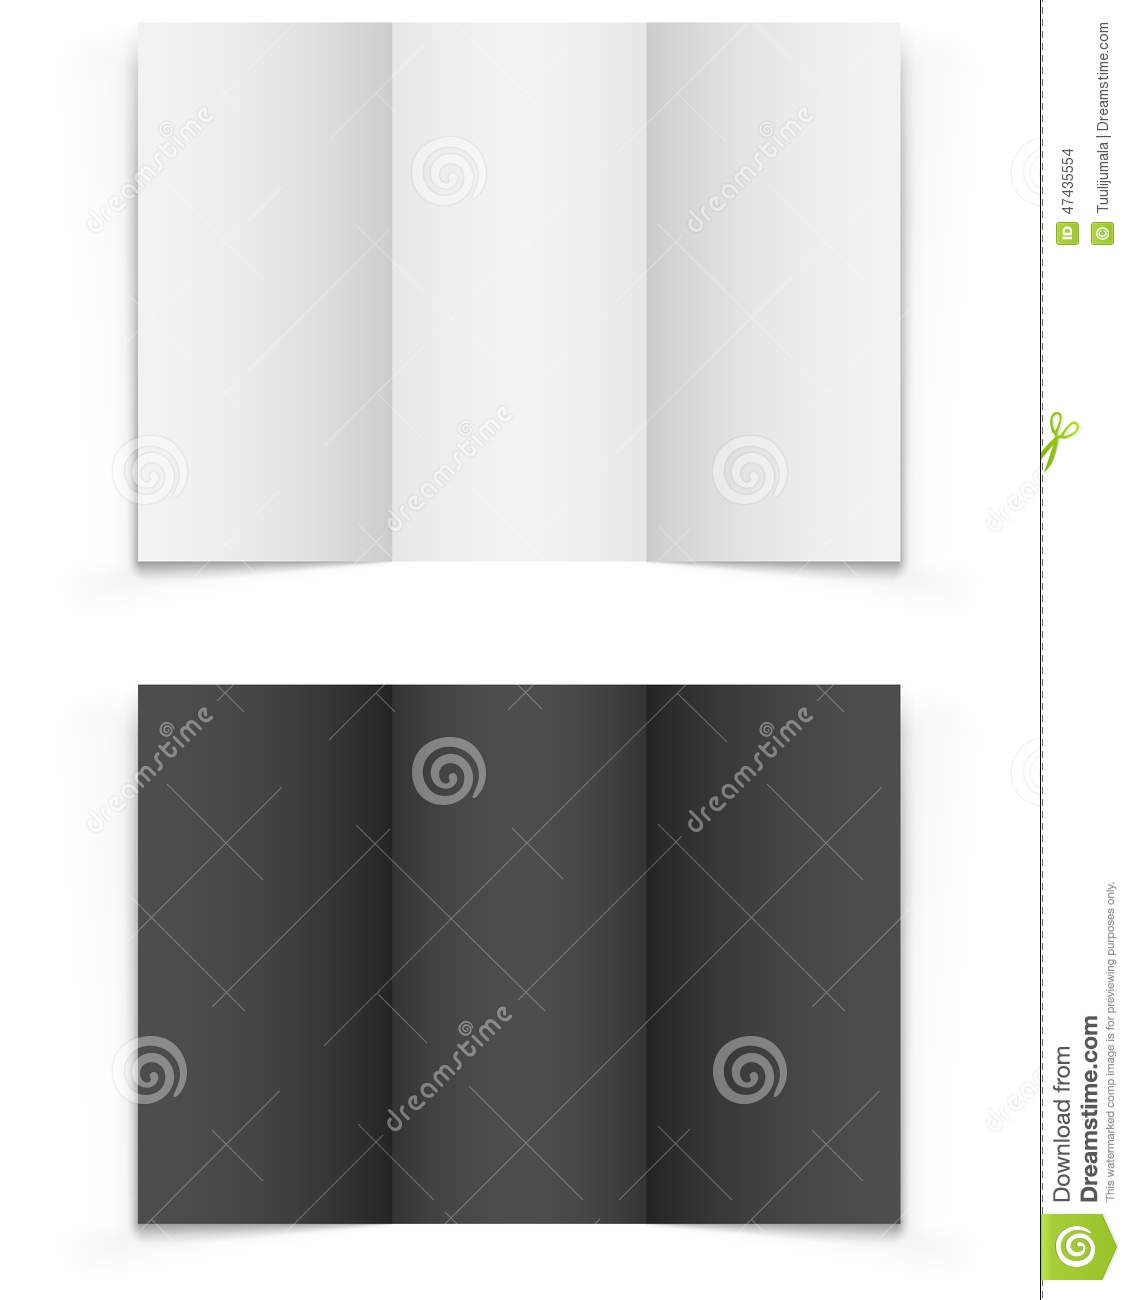 Blank Trifold Brochure Vector Image 47435554 – Blank Tri Fold Brochure Template